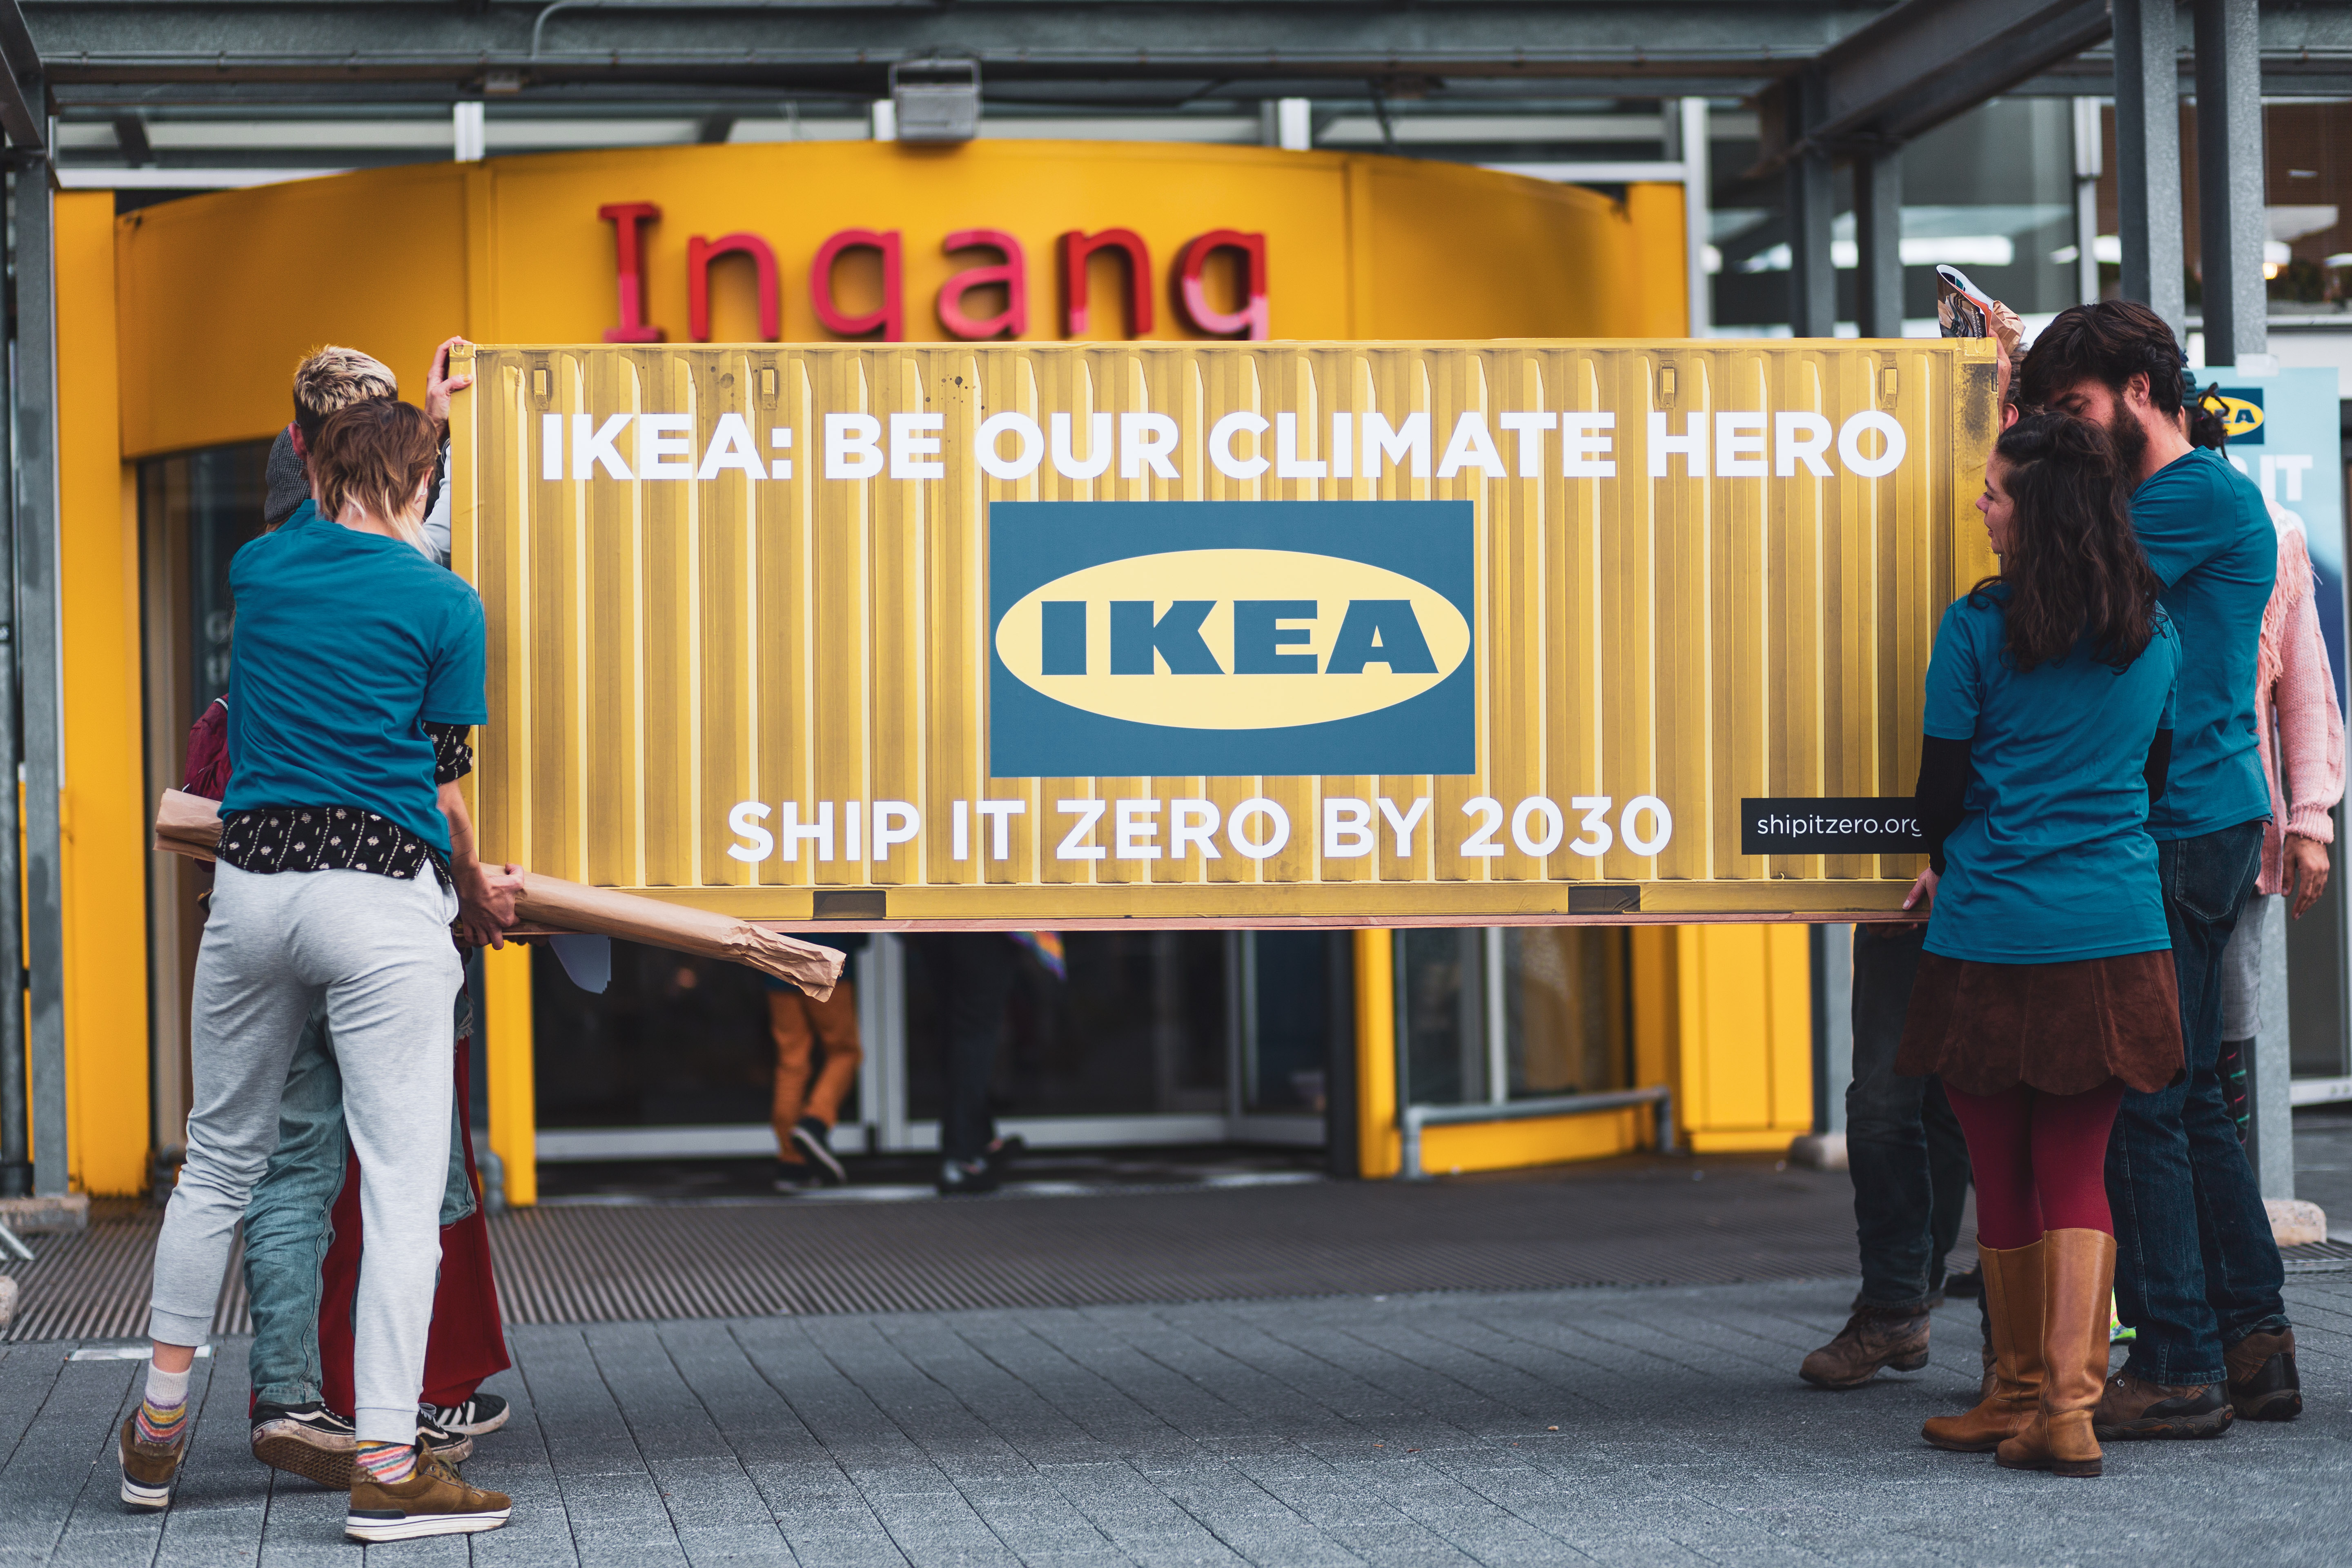 Ship It Zero calls on Ikea to reach zero-emissions shipping by 2030.